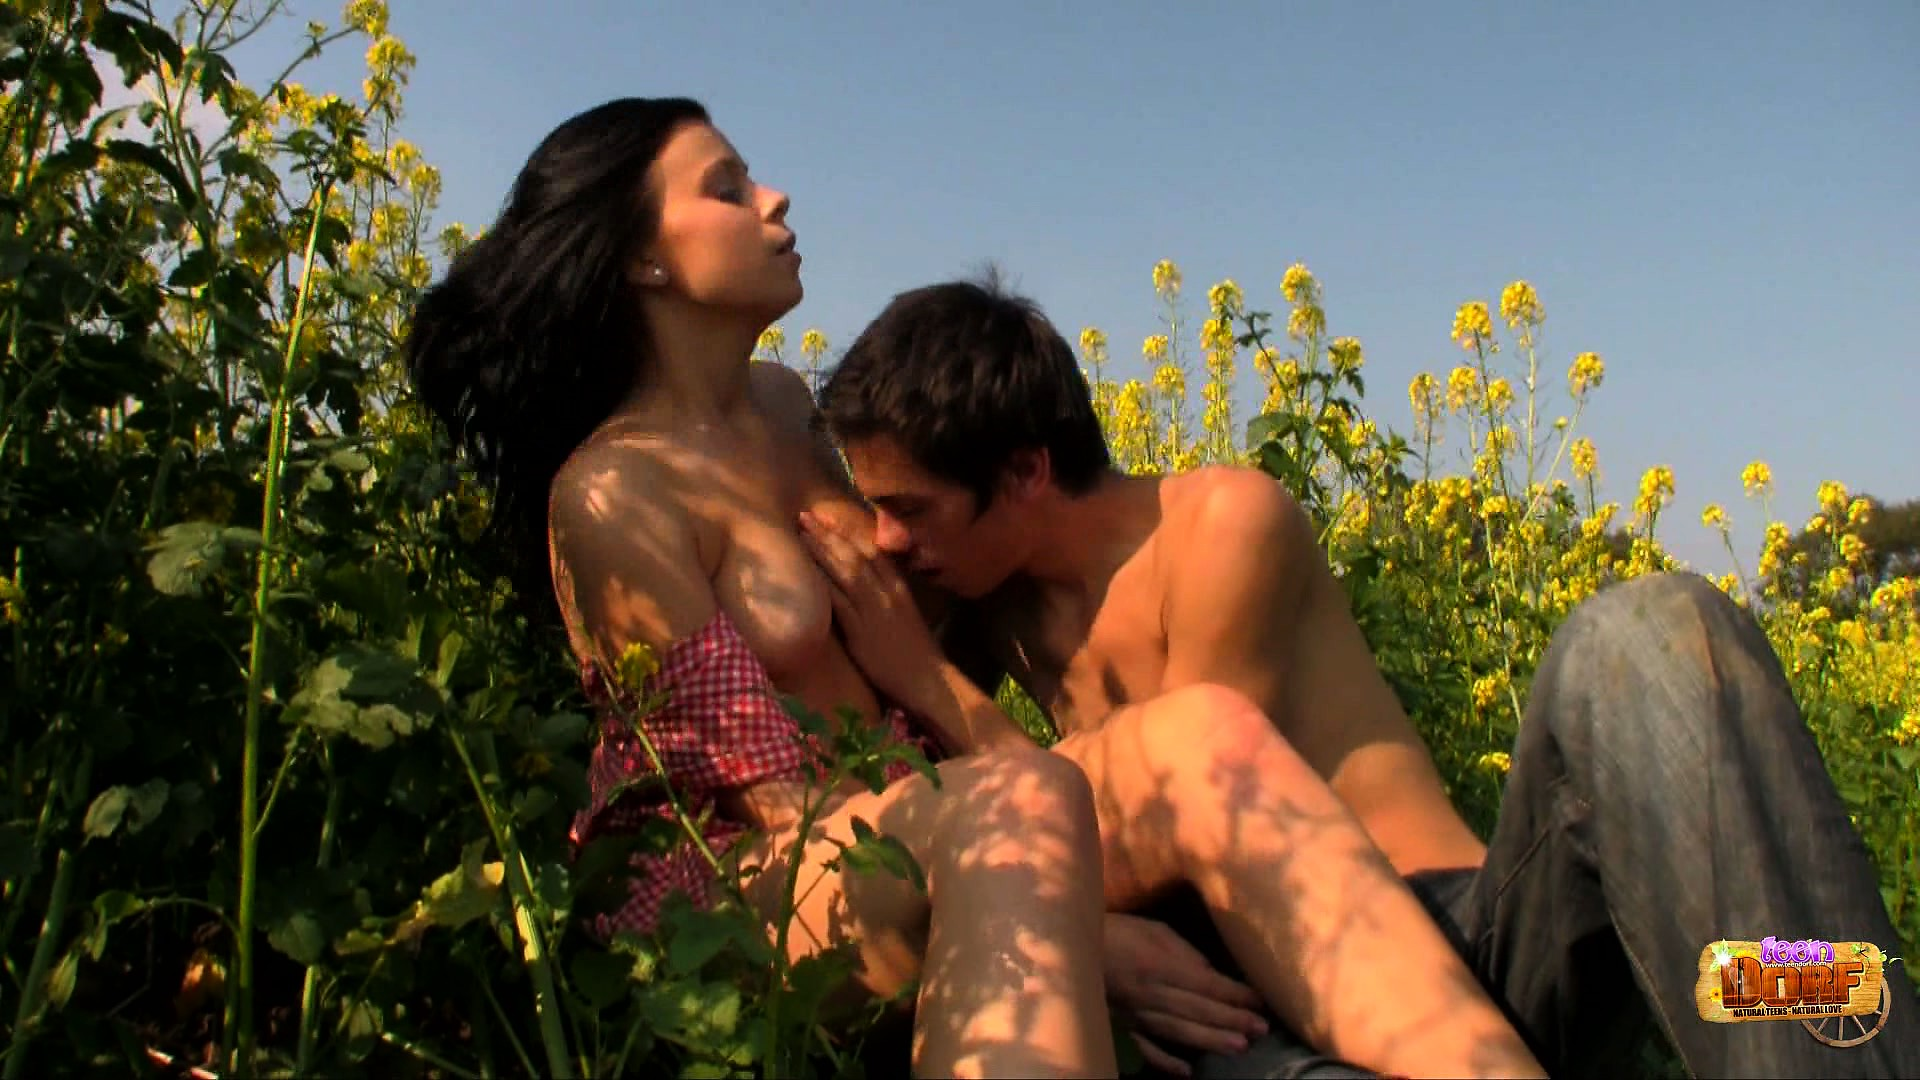 Porno Video of Branislava And Filip In A Field Get Naked For Some Nice Pussy Eating